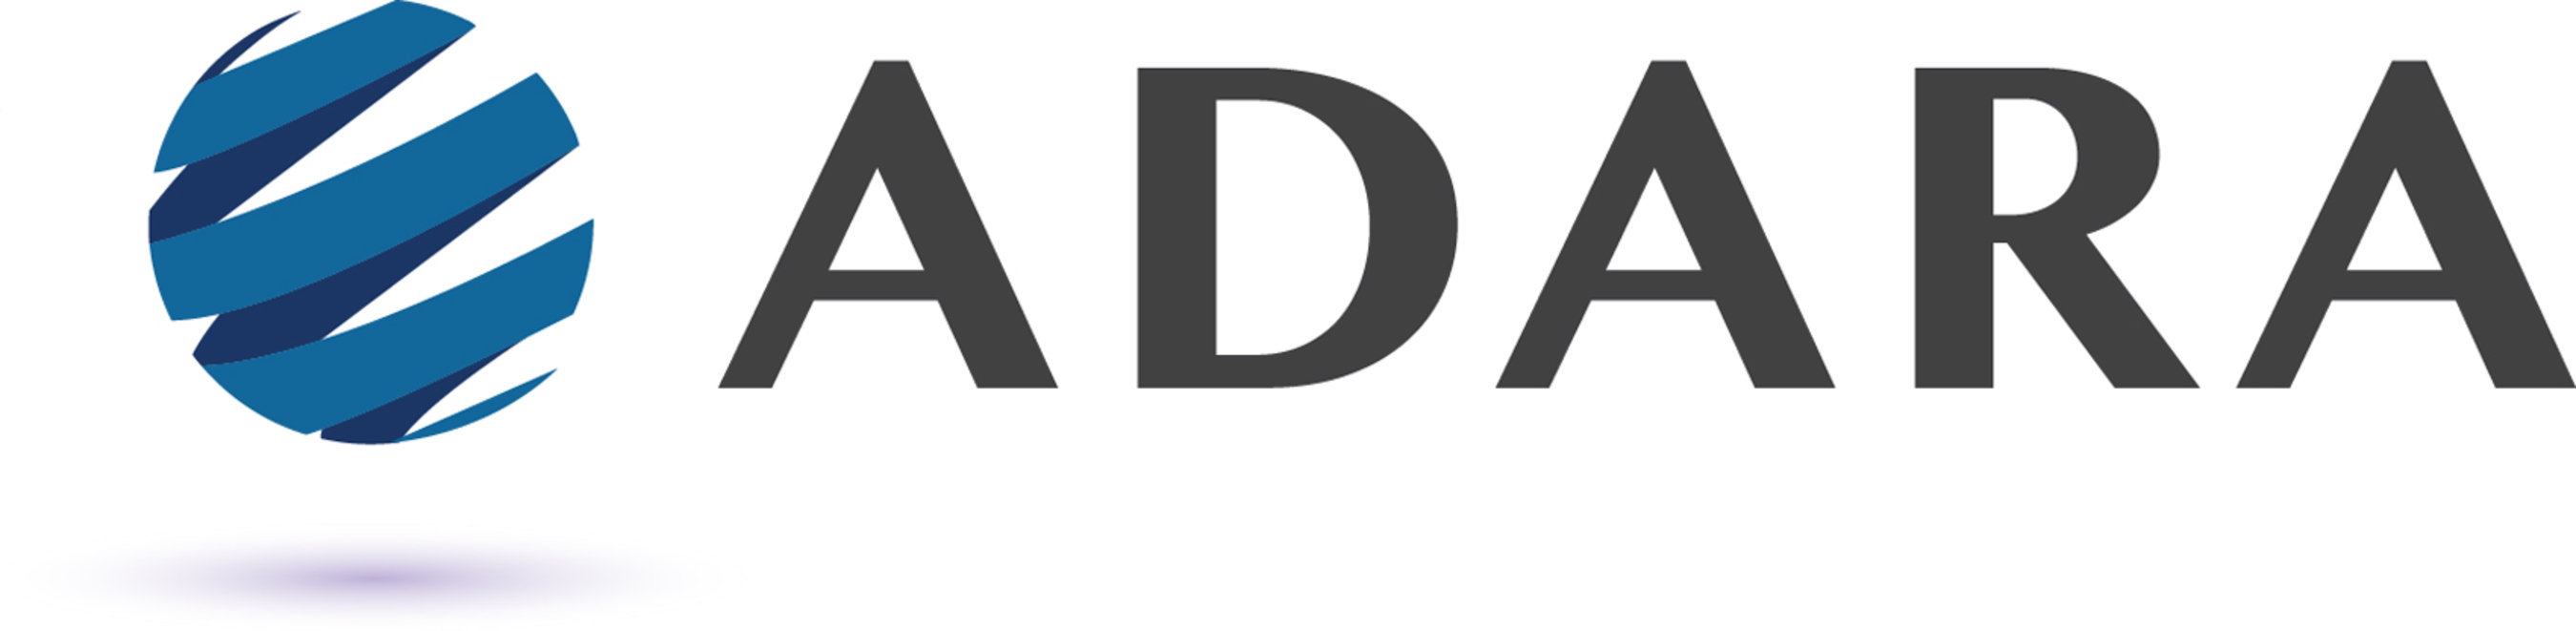 ADARA Networks Joins ONOS Project as Collaborator